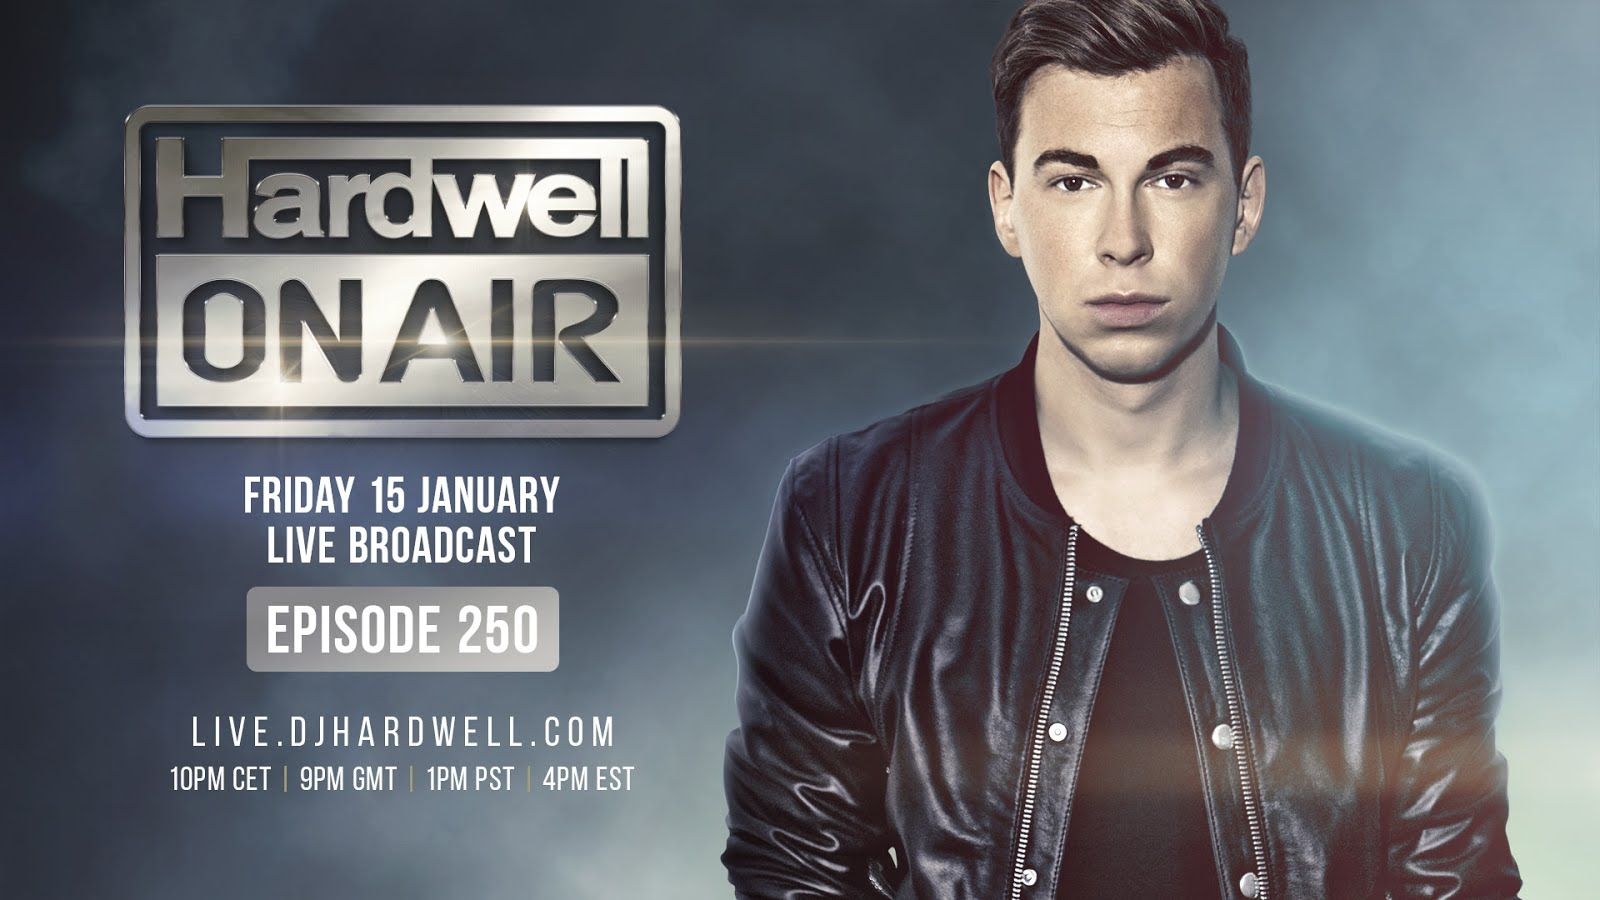 5bf683b5af181 ...  Hardwell On Air  has gone onto become one of the most popular radio  shows in the electronic sphere